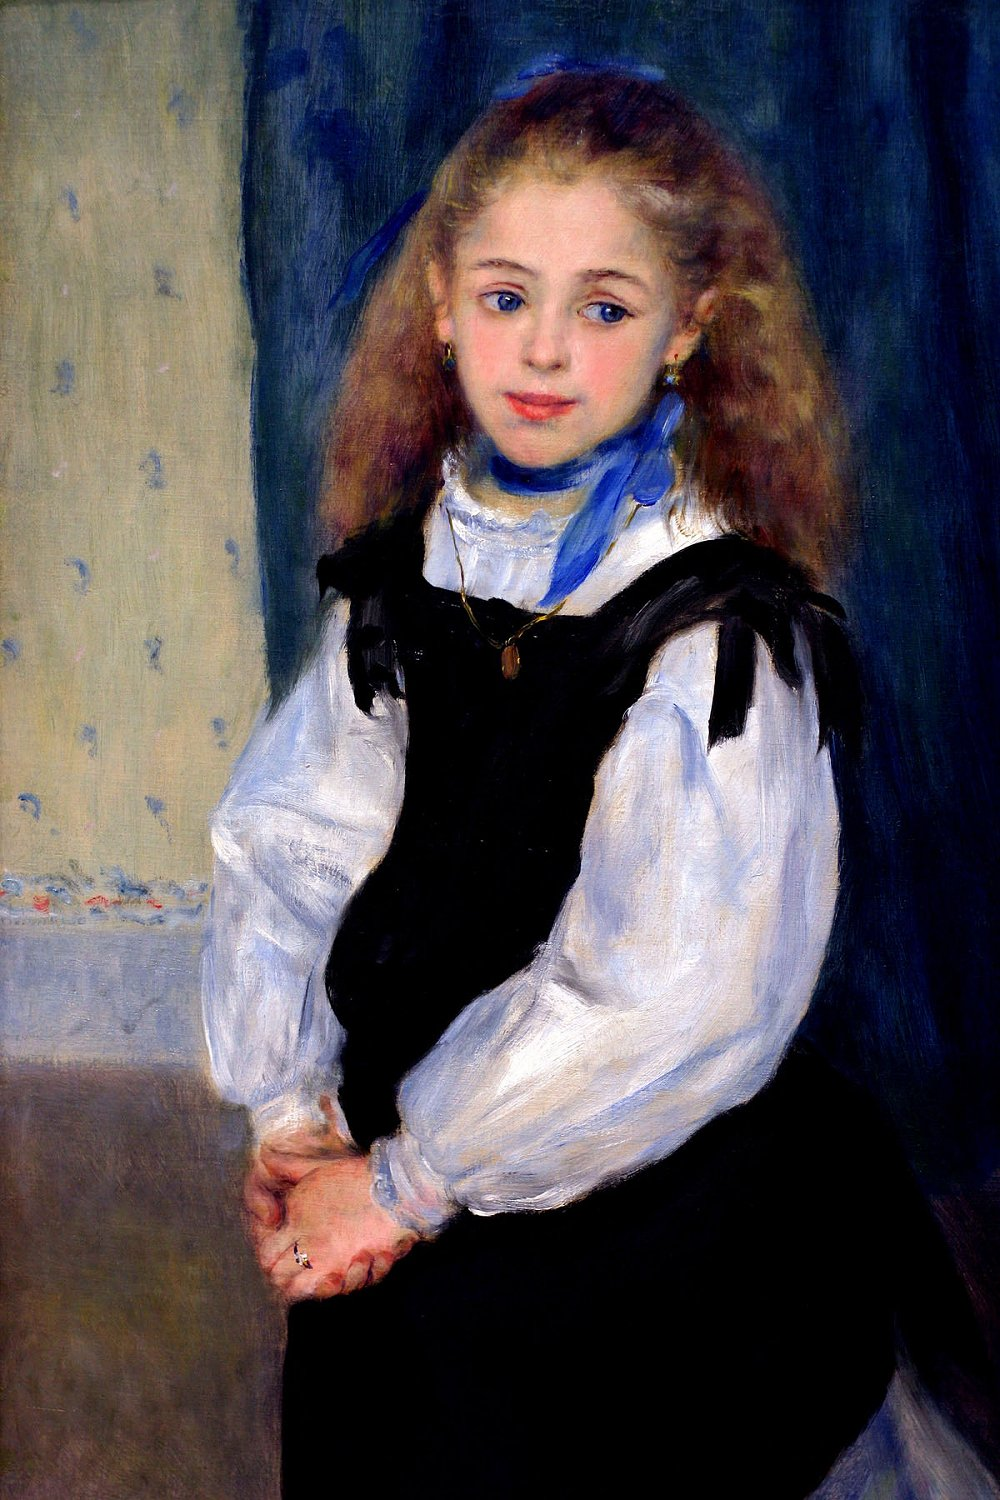 Portrait of Mademoiselle Legrand by Pierre-Auguste Renoir, 1875